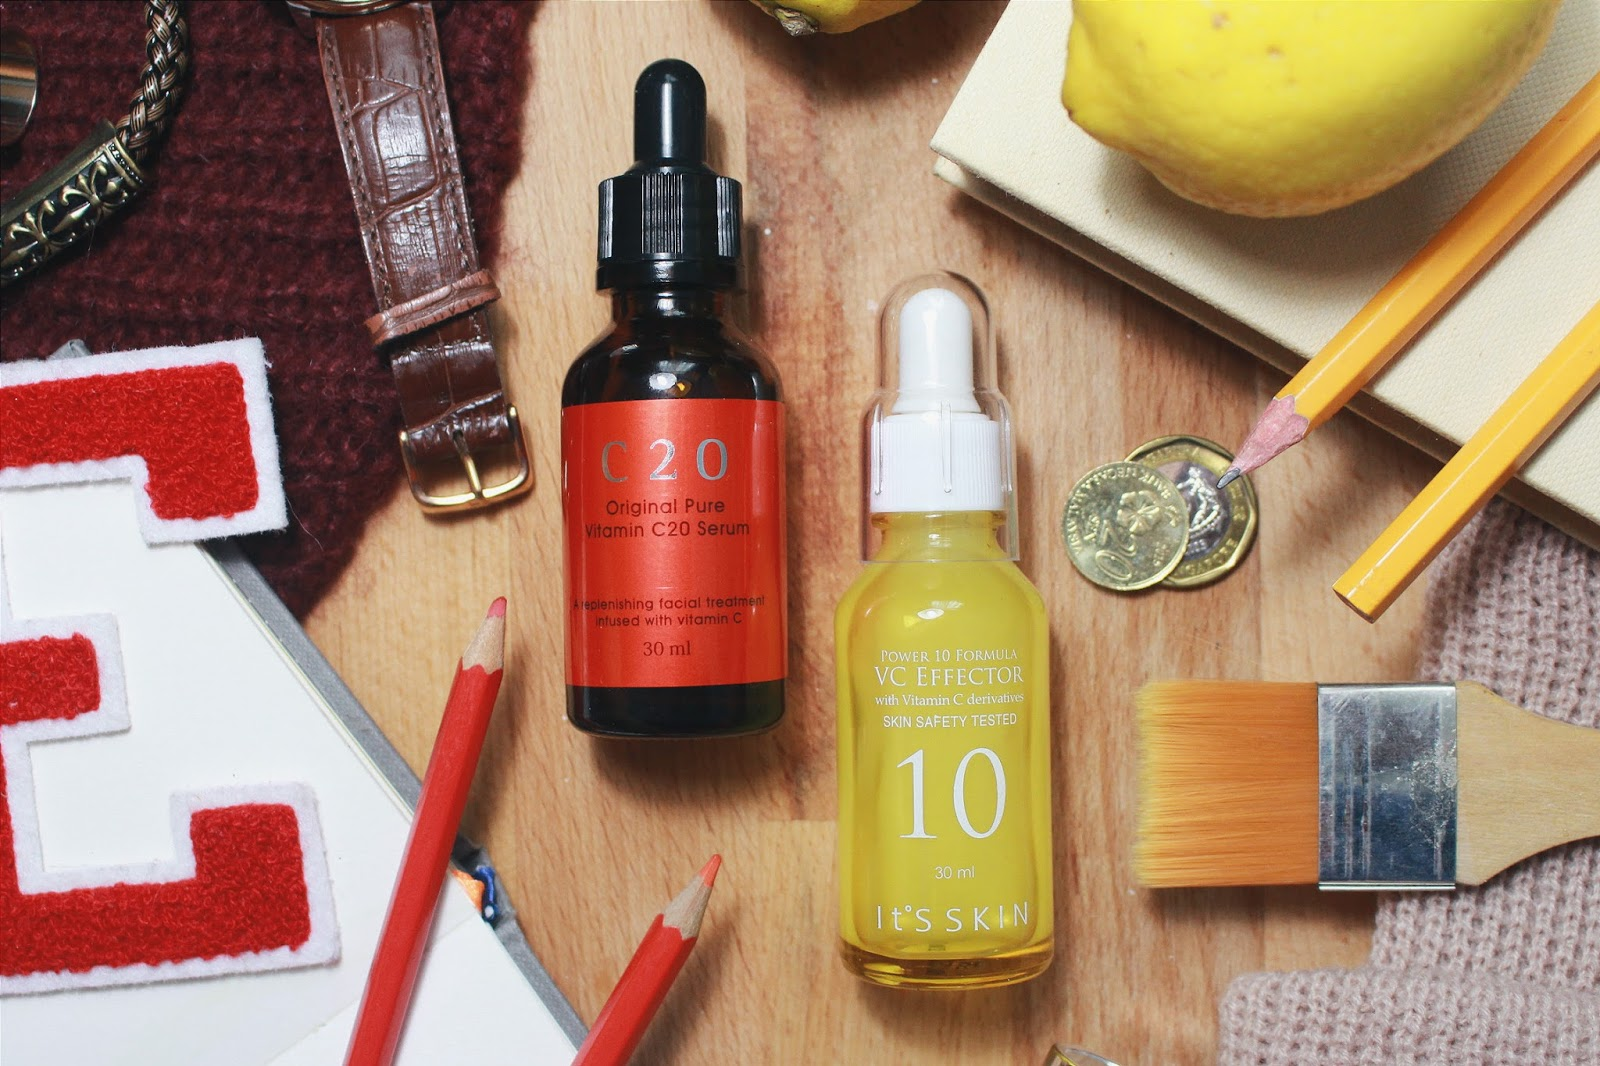 Ost Original Pure Vitamin C20 Serum Review Fishmeatdie 30ml Thanks For Reading